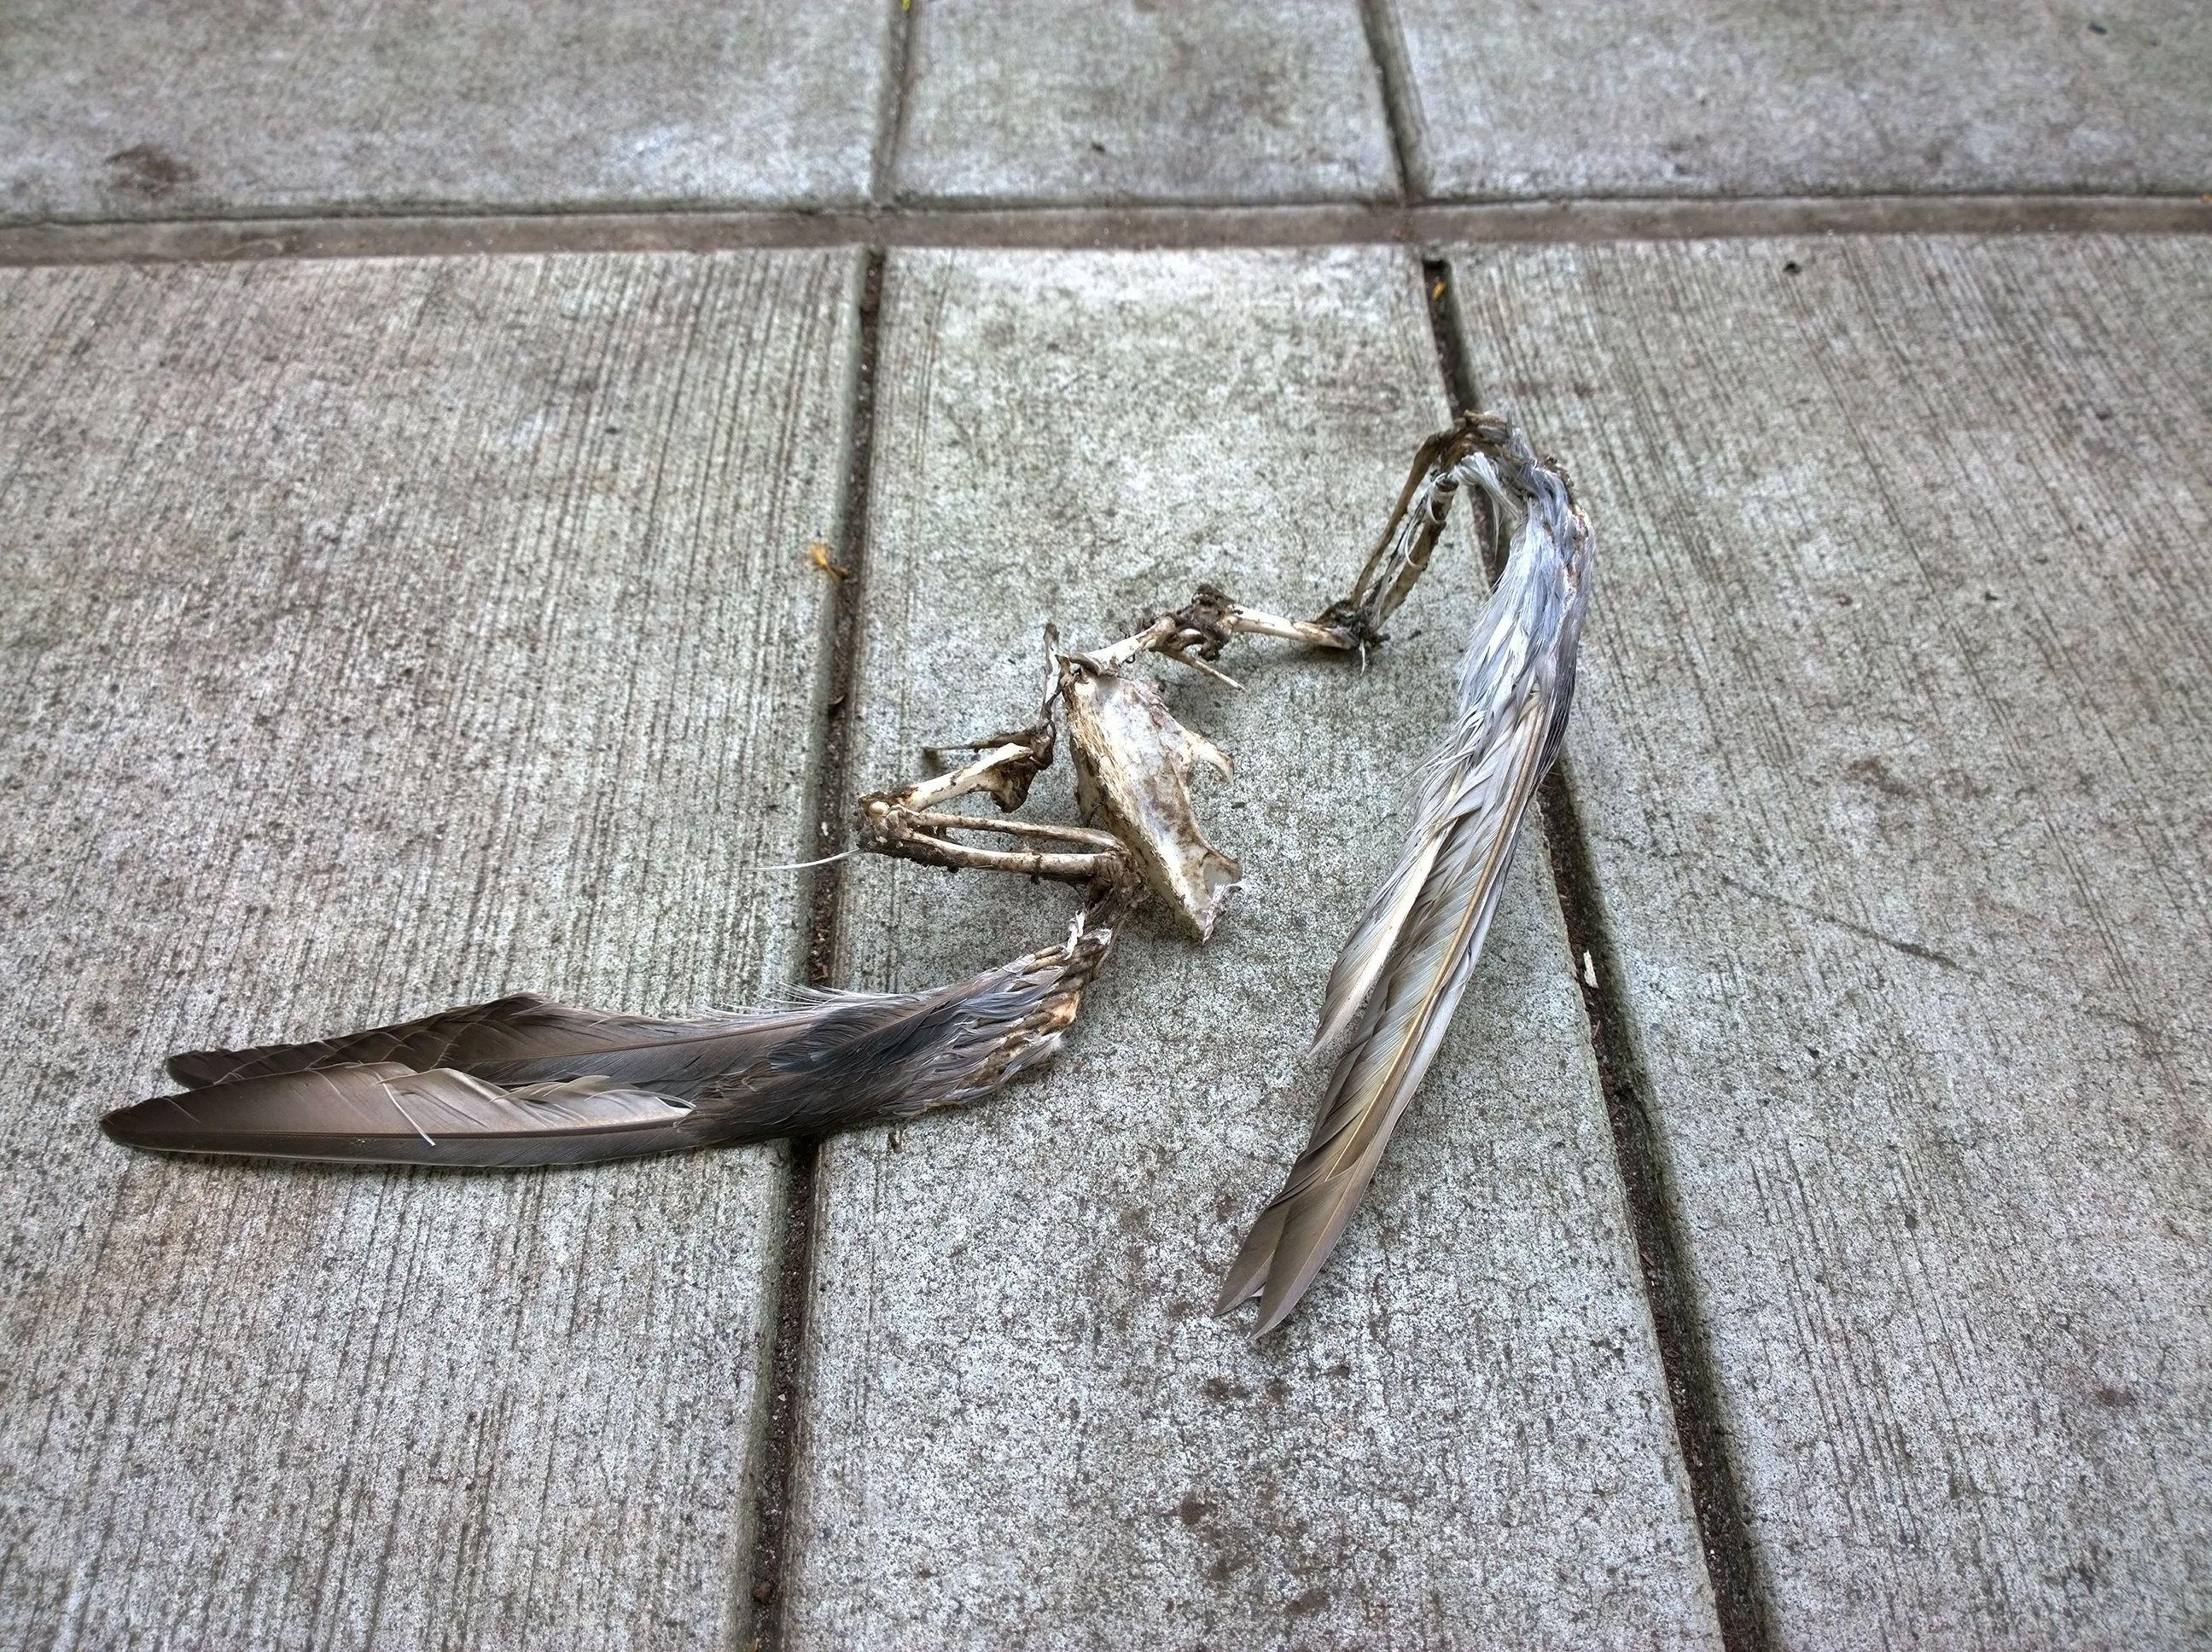 Pigeon wings found near MaCaw Hall (Seattle Center)